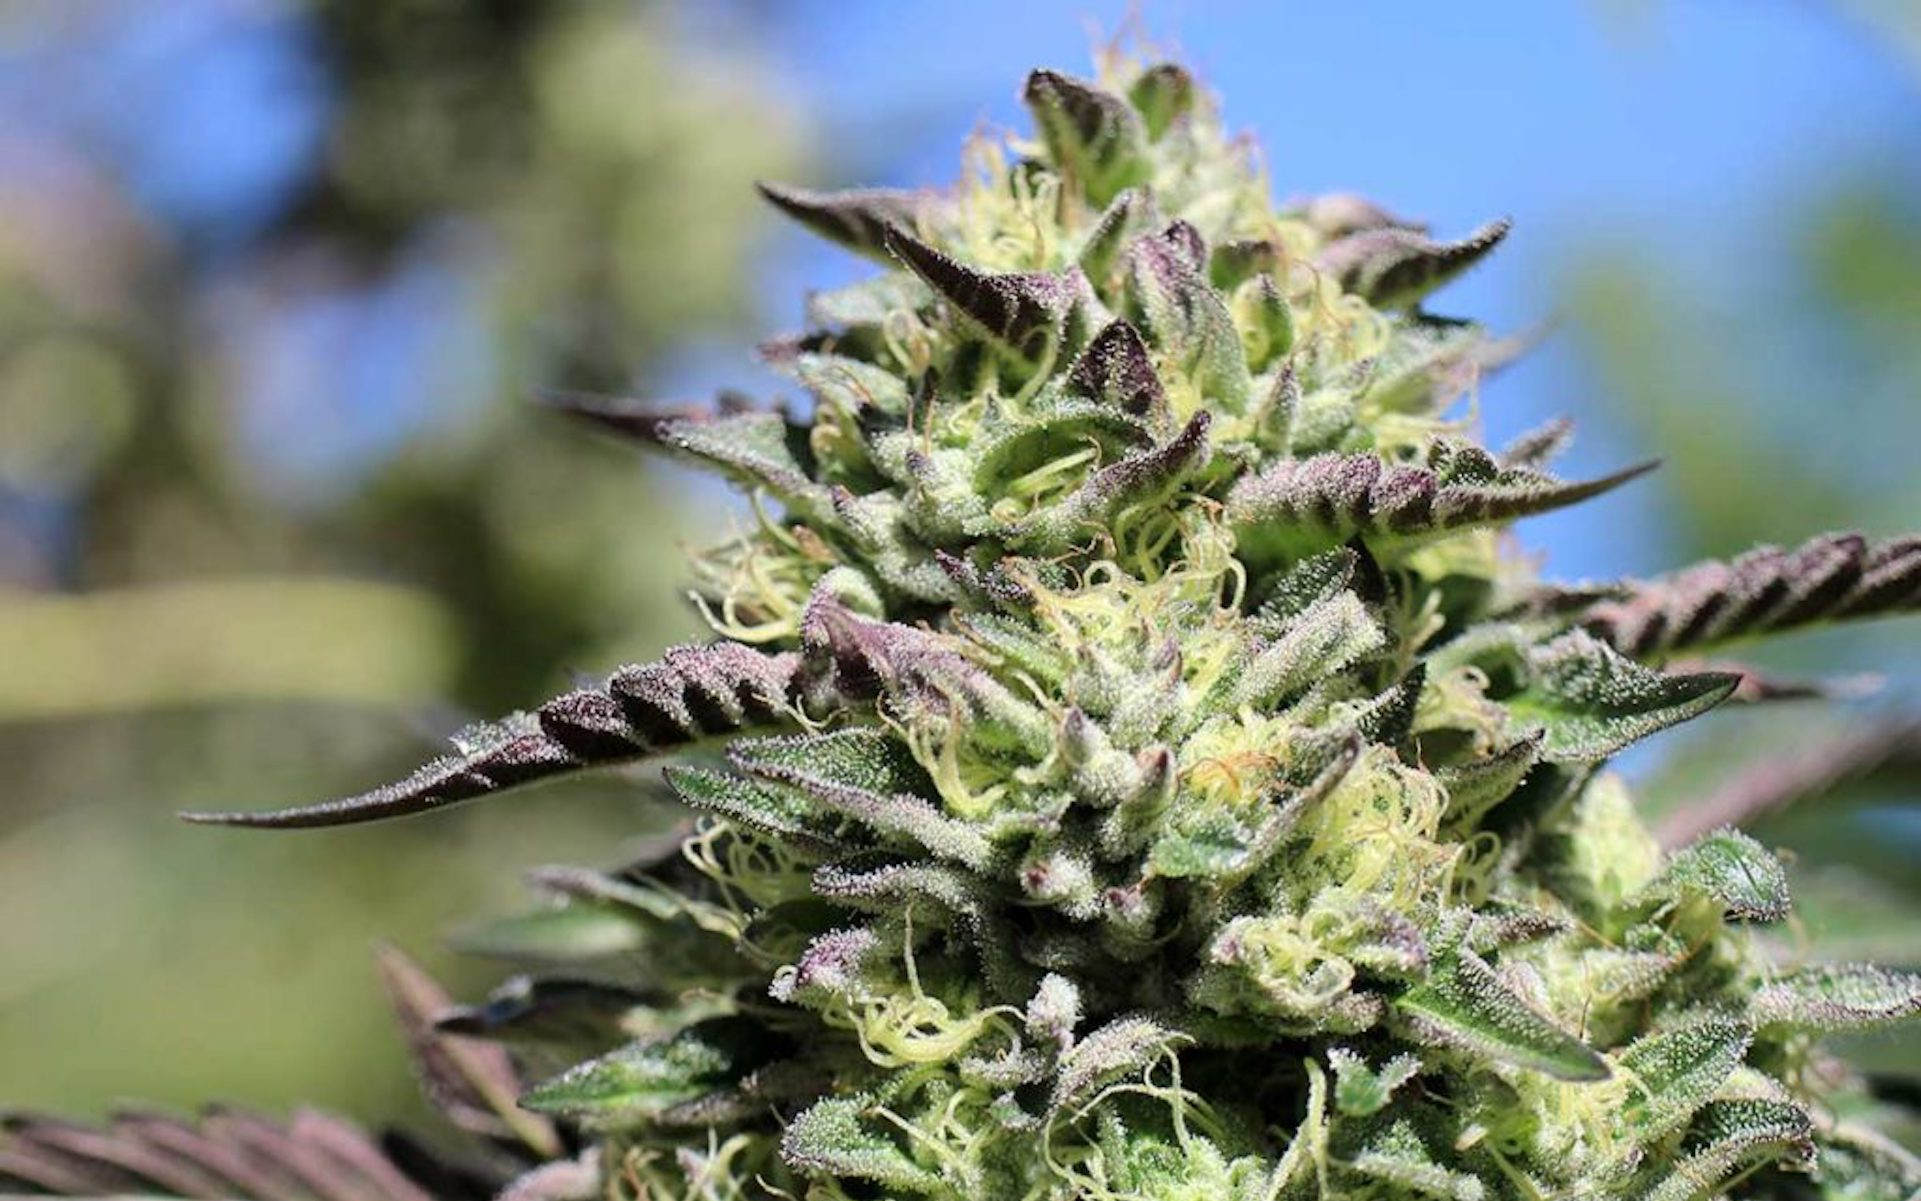 Best Weed Strains 2020 The Best New Marijuana Strains to Grow in 2019